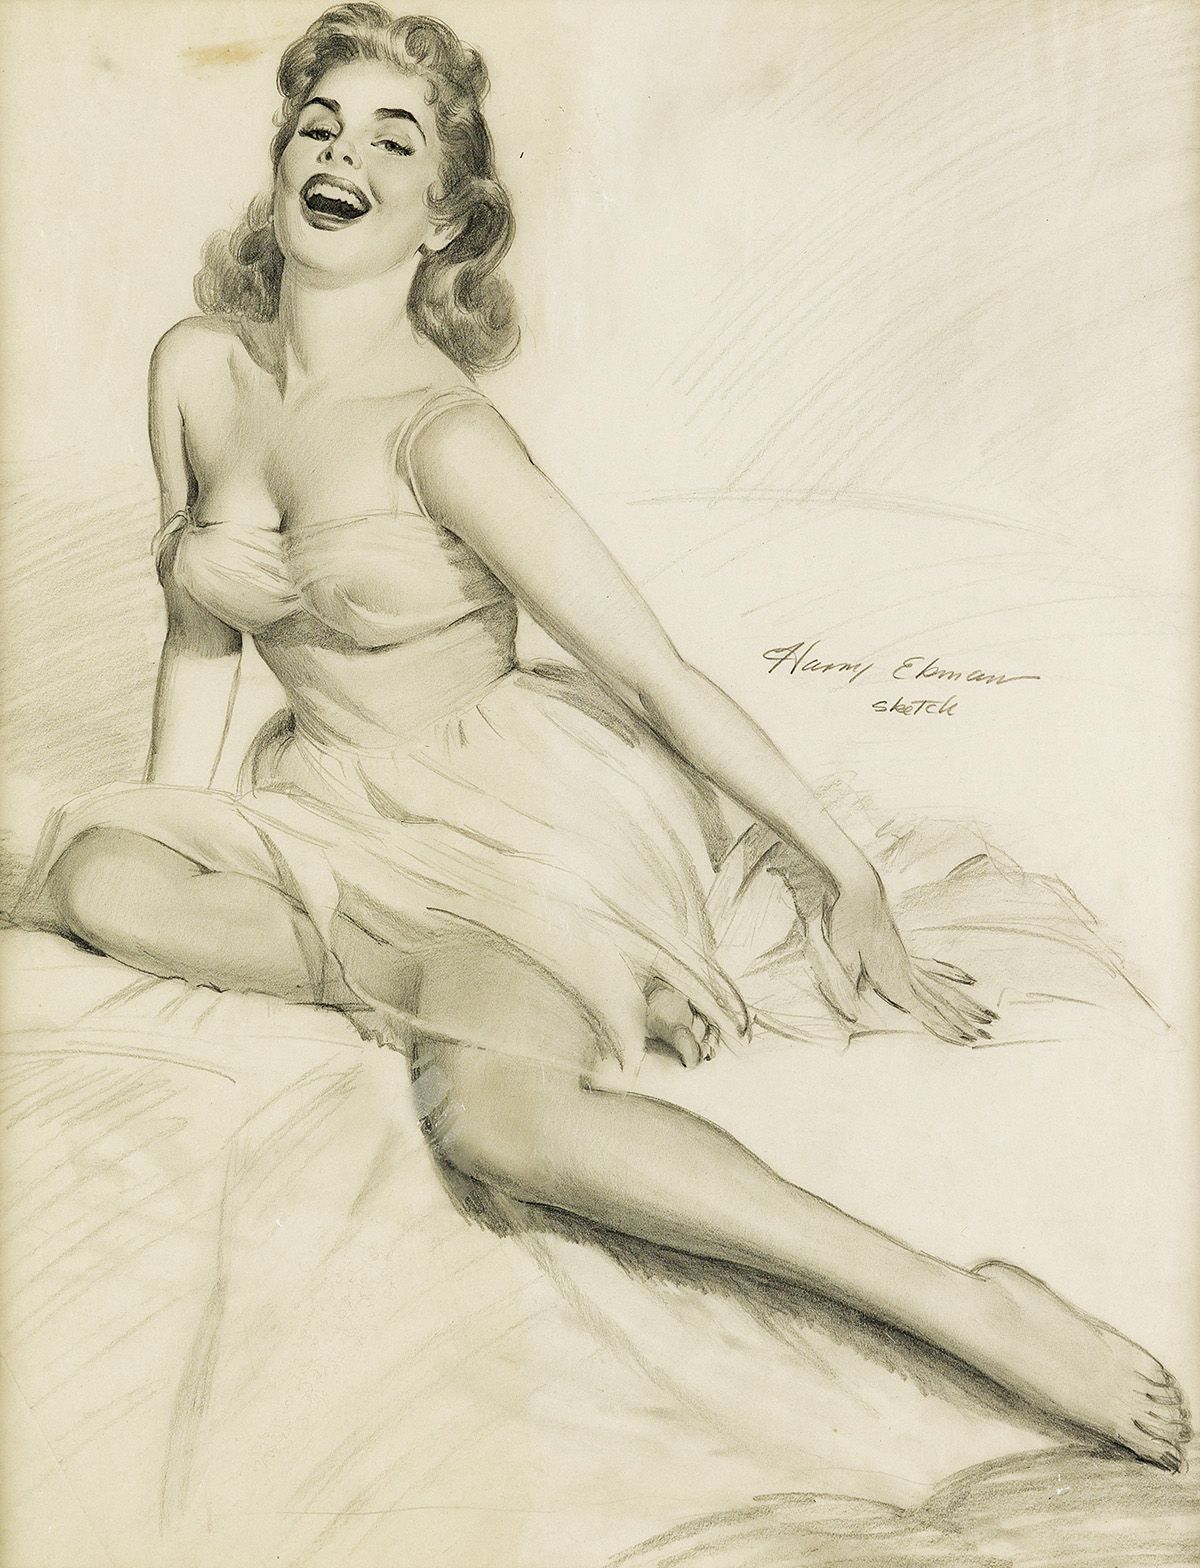 HARRY-EKMAN-(PIN-UP)-Divine-Laughter